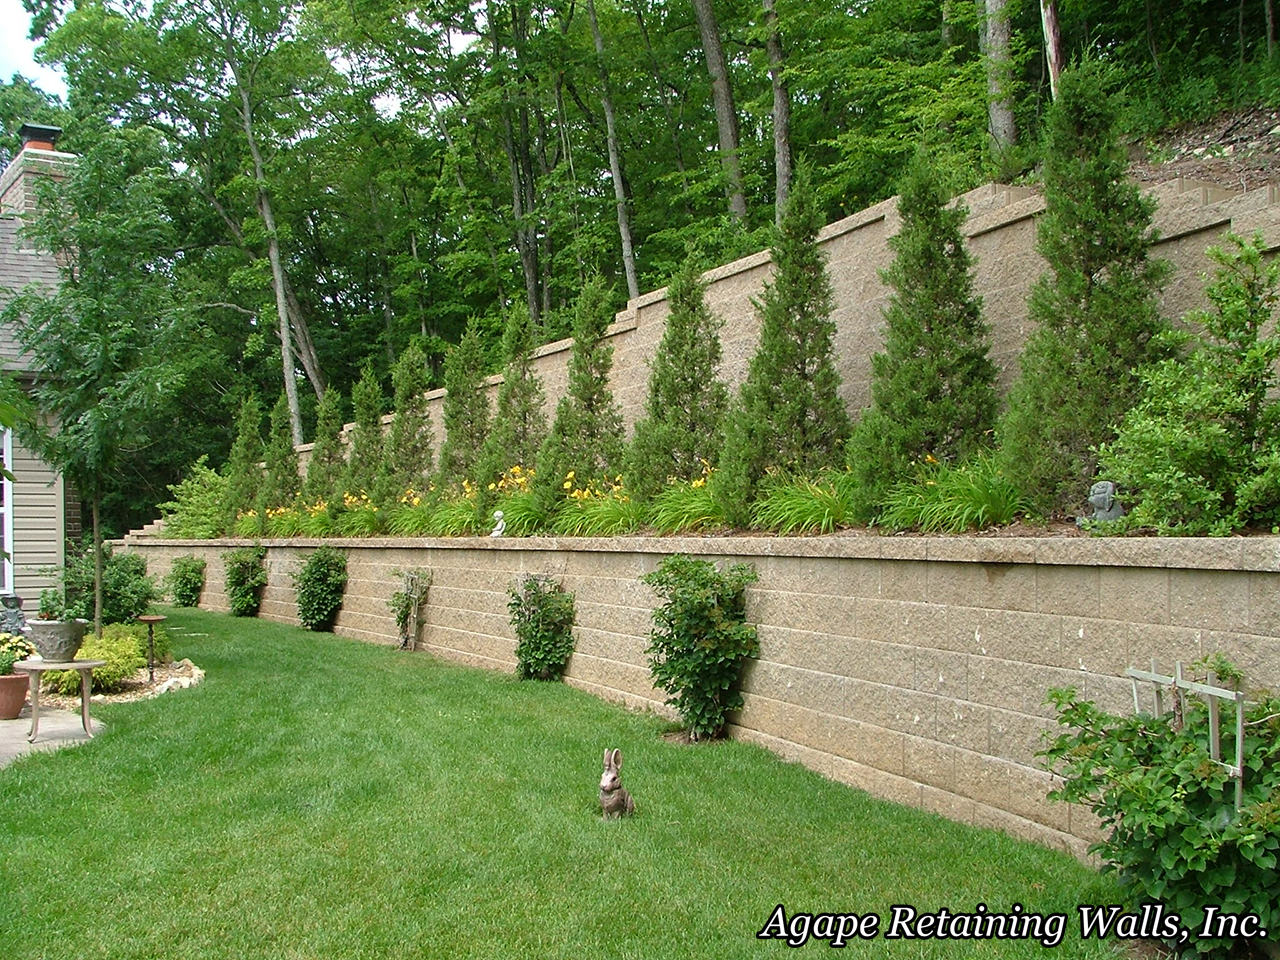 Agape Retaining Walls, Inc Terrace Photo Album 2 on small brick design, small paver design, small tank design, small cofferdam design, small pipe design, small tower design, small gazebo design, retaining walls landscaping design, small lawn design, small concrete retaining wall, small bookstore design, small stone retaining walls, small building design, small butler's pantry design, small earth dam design, small rock retaining wall, small floor design, small fireplace design, gabion wall design,